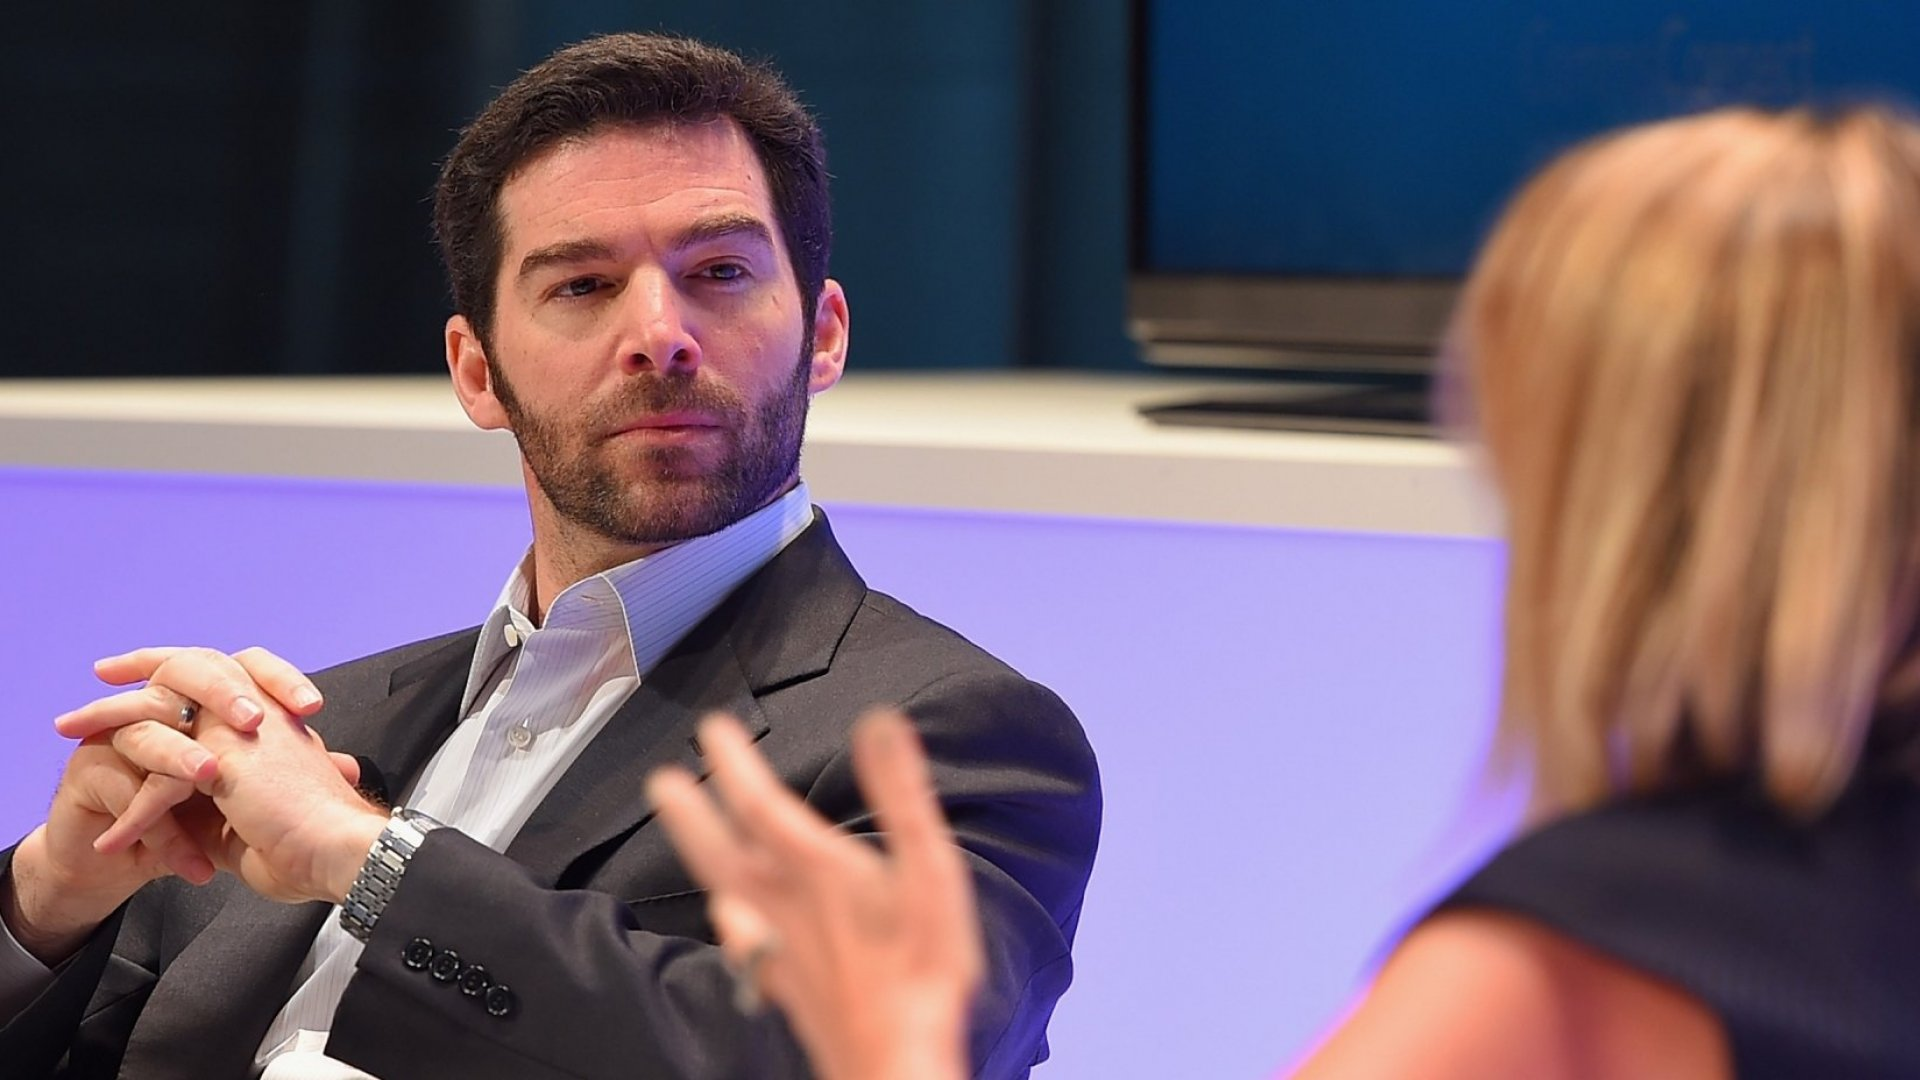 LinkedIn CEO Jeff Weiner Says This 1 Simple Rule Will Eliminate Useless Meetings